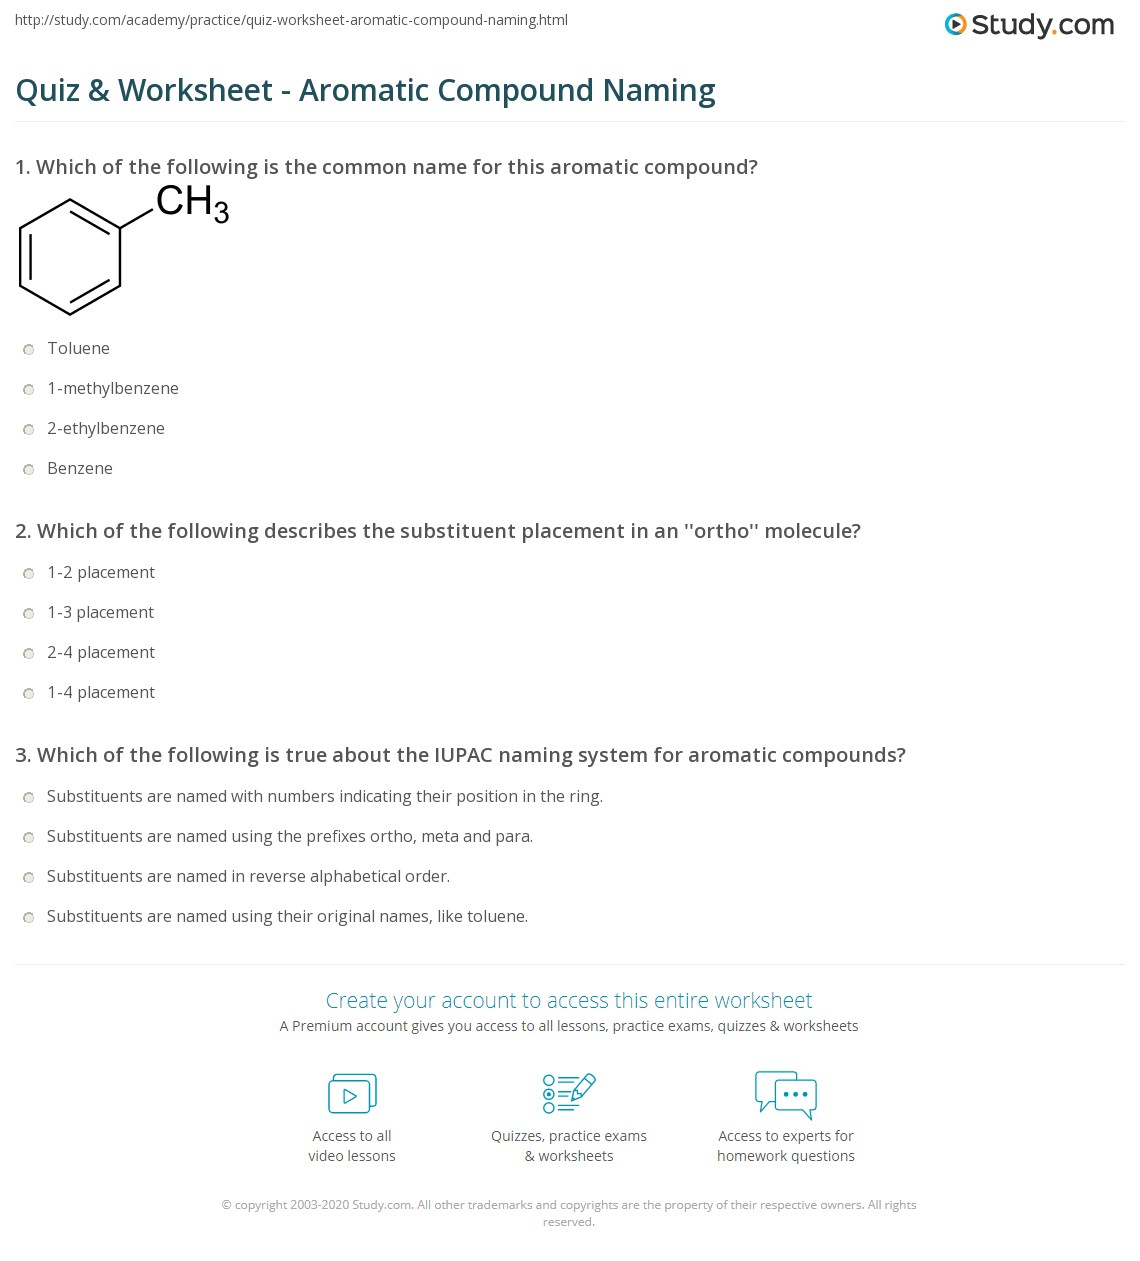 Quiz & Worksheet - Aromatic Compound Naming | Study com